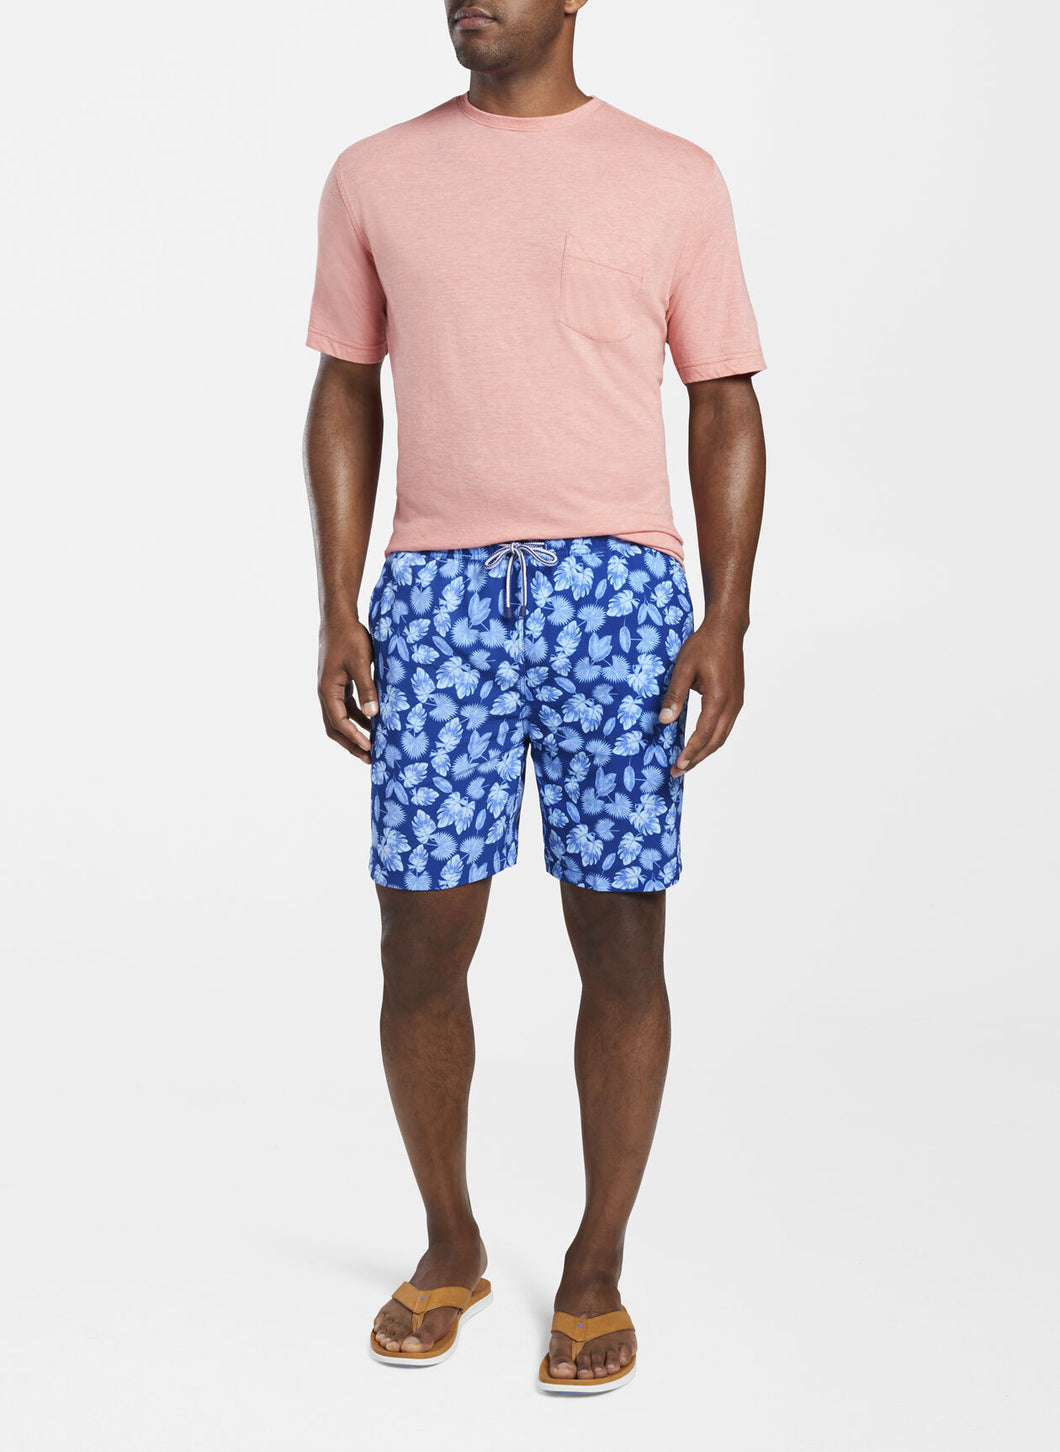 PETER MILLAR- Primo Palms Swim Trunk- Deep Ocean